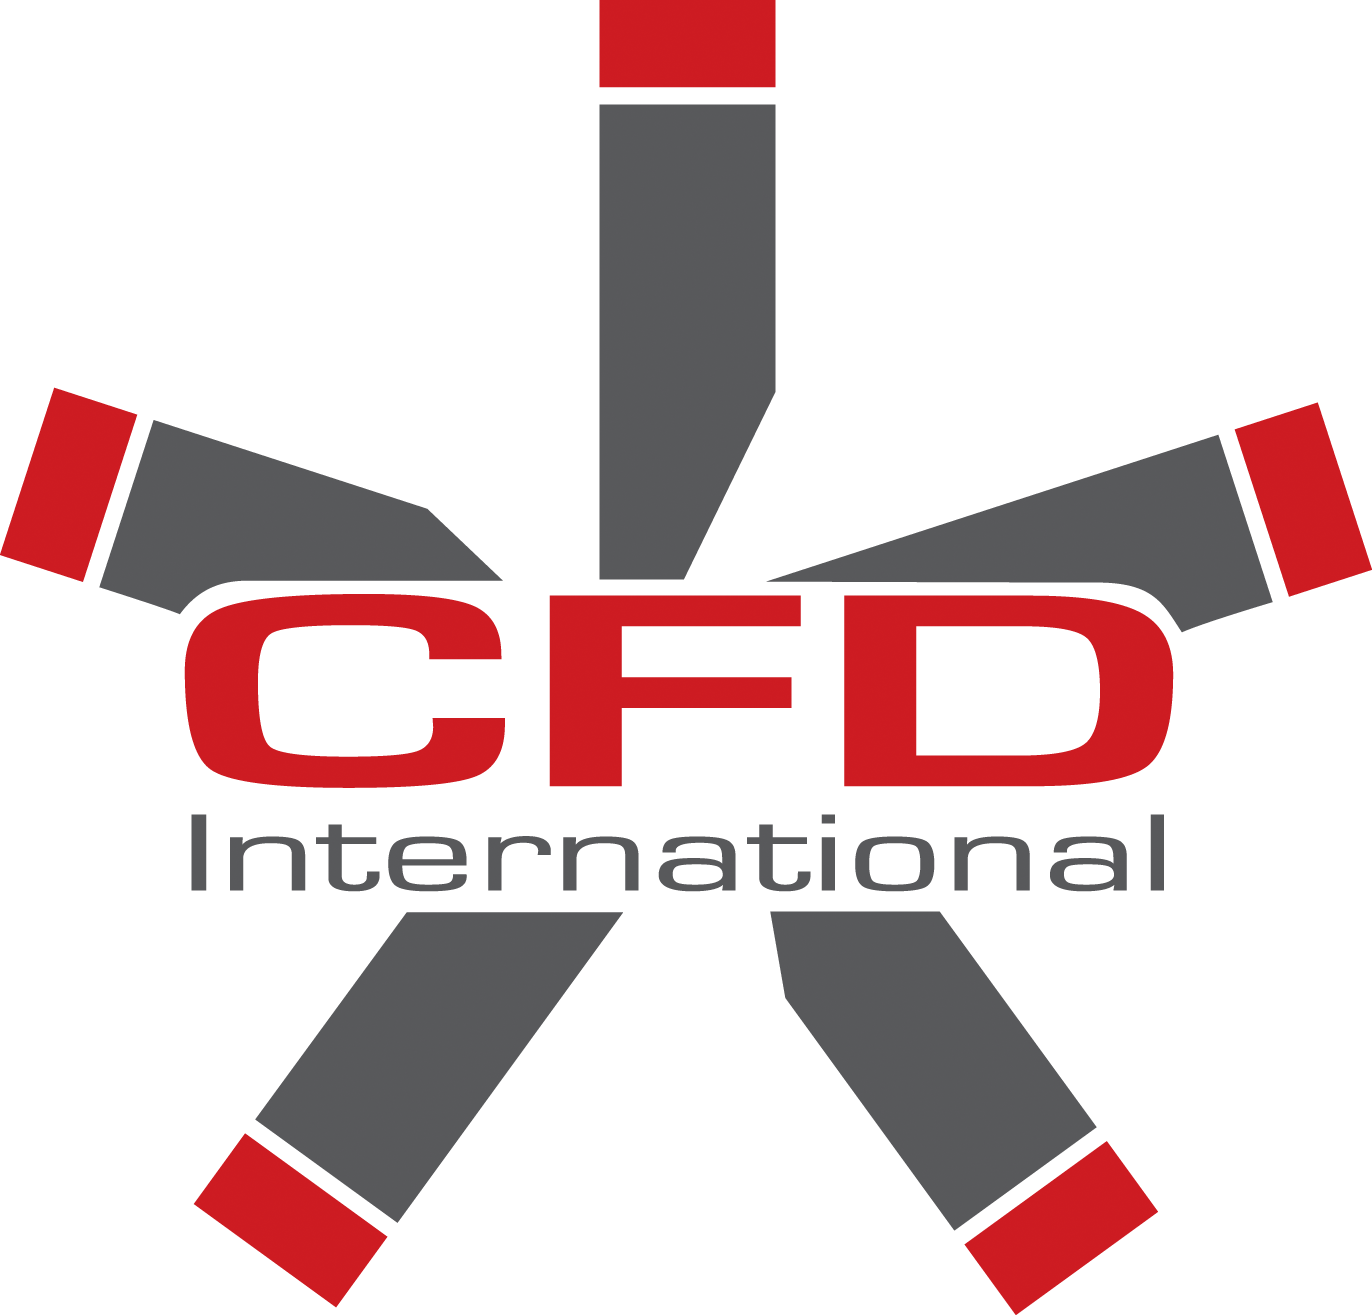 CFD International, LLC in Princeton, TX. Military aircraft components, armament & engineering services.